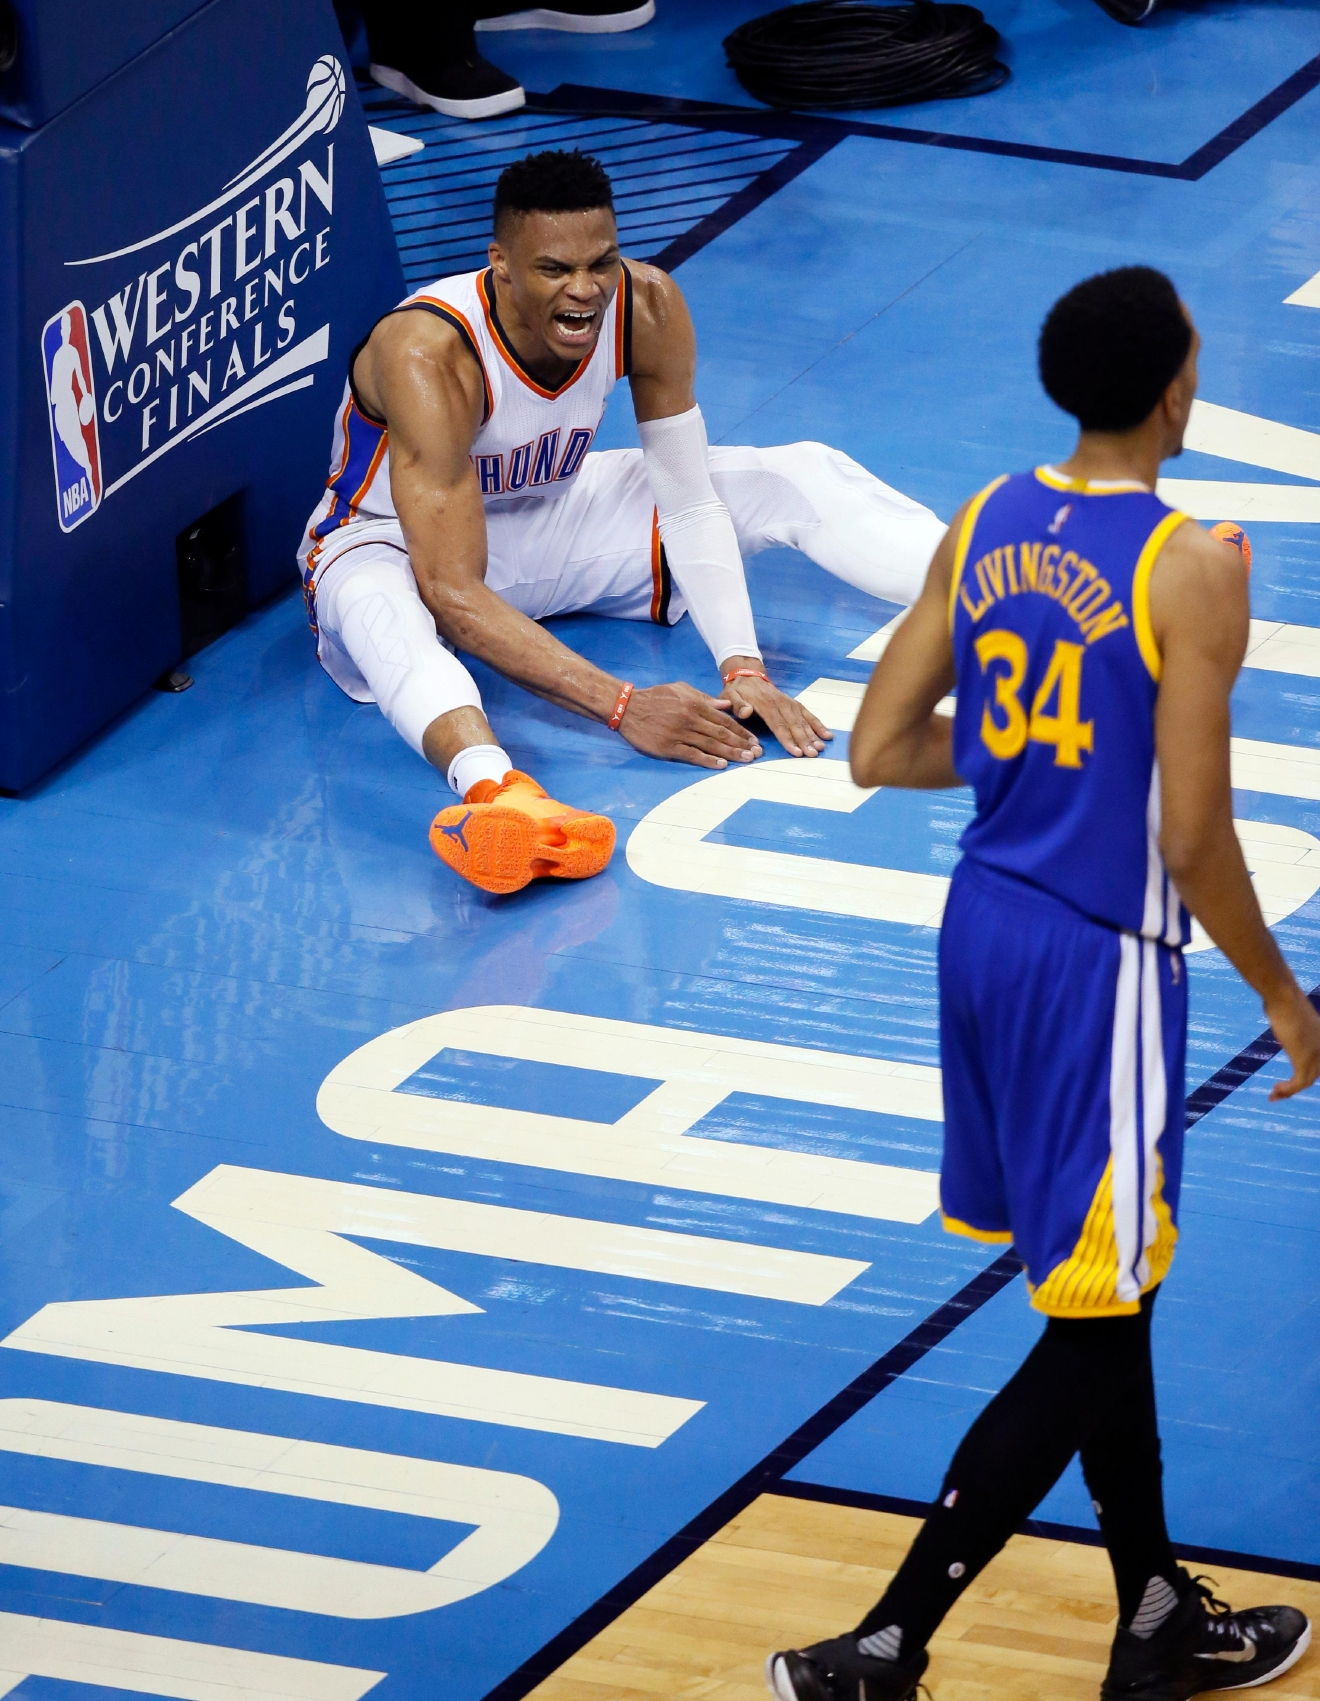 Oklahoma City Thunder guard Russell Westbrook (0) reacts as Golden State Warriors guard Shaun Livingston (34) walks by during the second half in Game 4 of the NBA basketball Western Conference finals in Oklahoma City, Tuesday, May 24, 2016. (AP Photo/Sue Ogrocki)